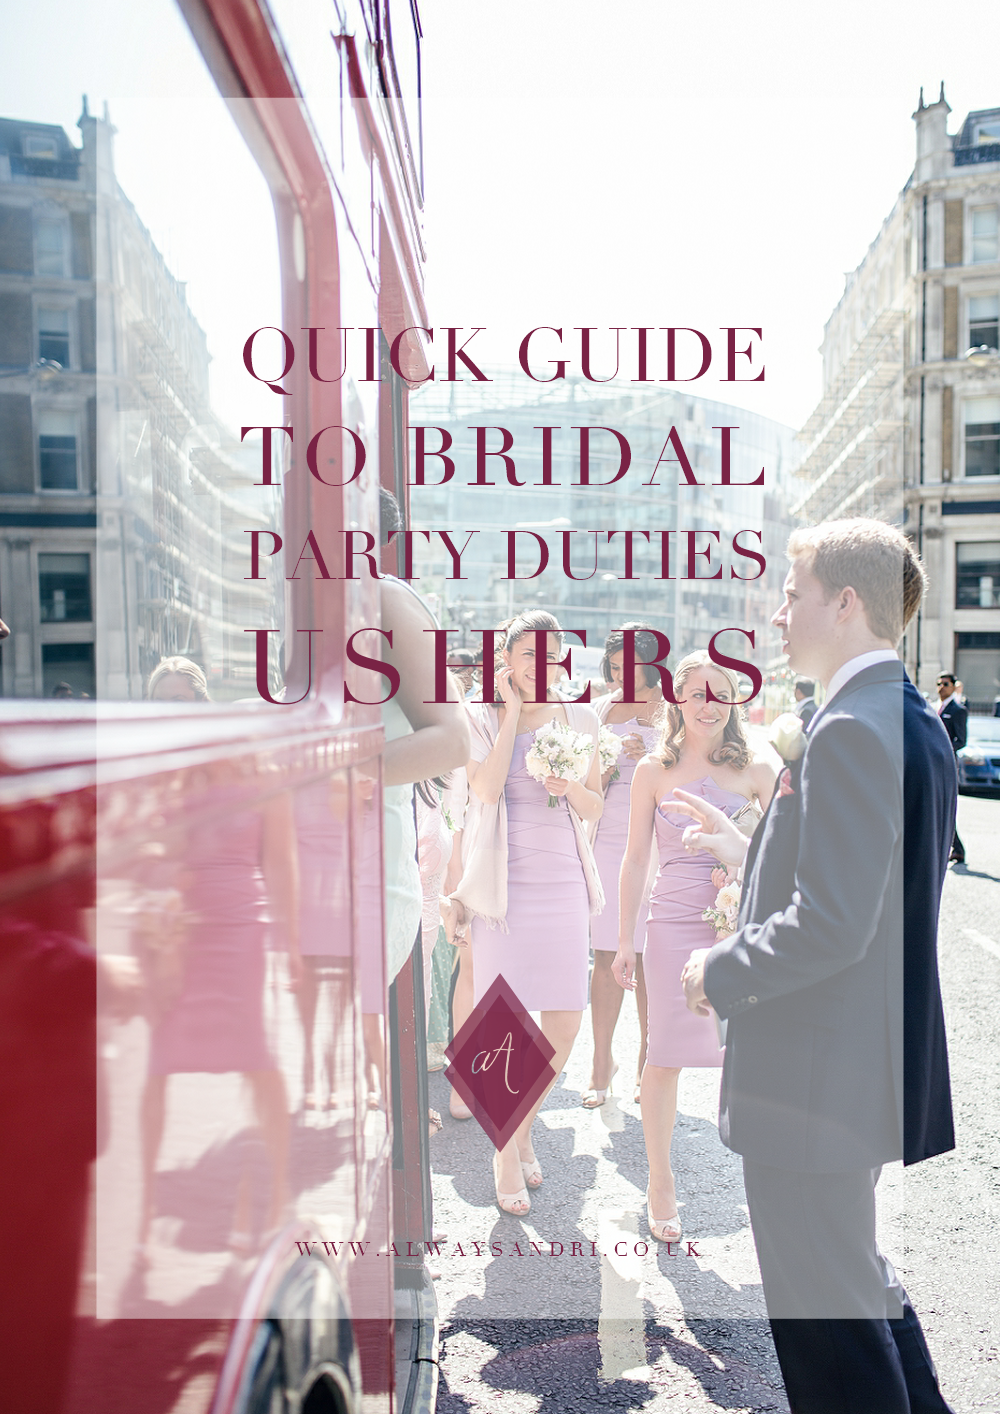 Quick Guide to Bridal Party Duties The Ushrers